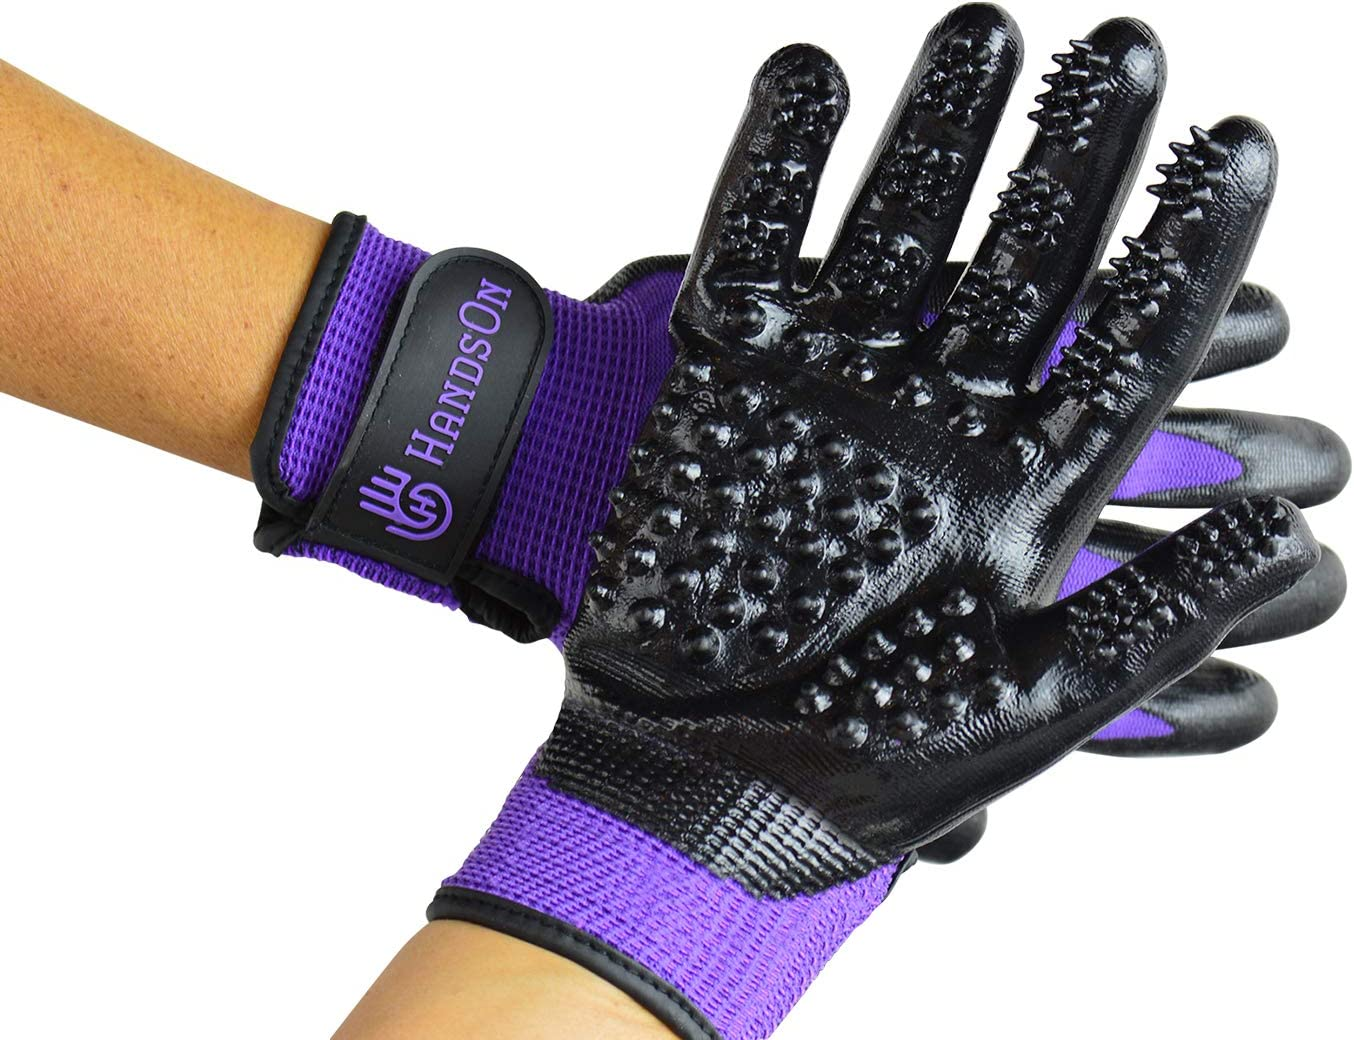 Handson Pet Grooming Gloves - Patented Shedding, Bathing, Hair Remover Gloves - Gentle Brush for All Sized Cats, Dogs, and Horses (Purple, Medium)